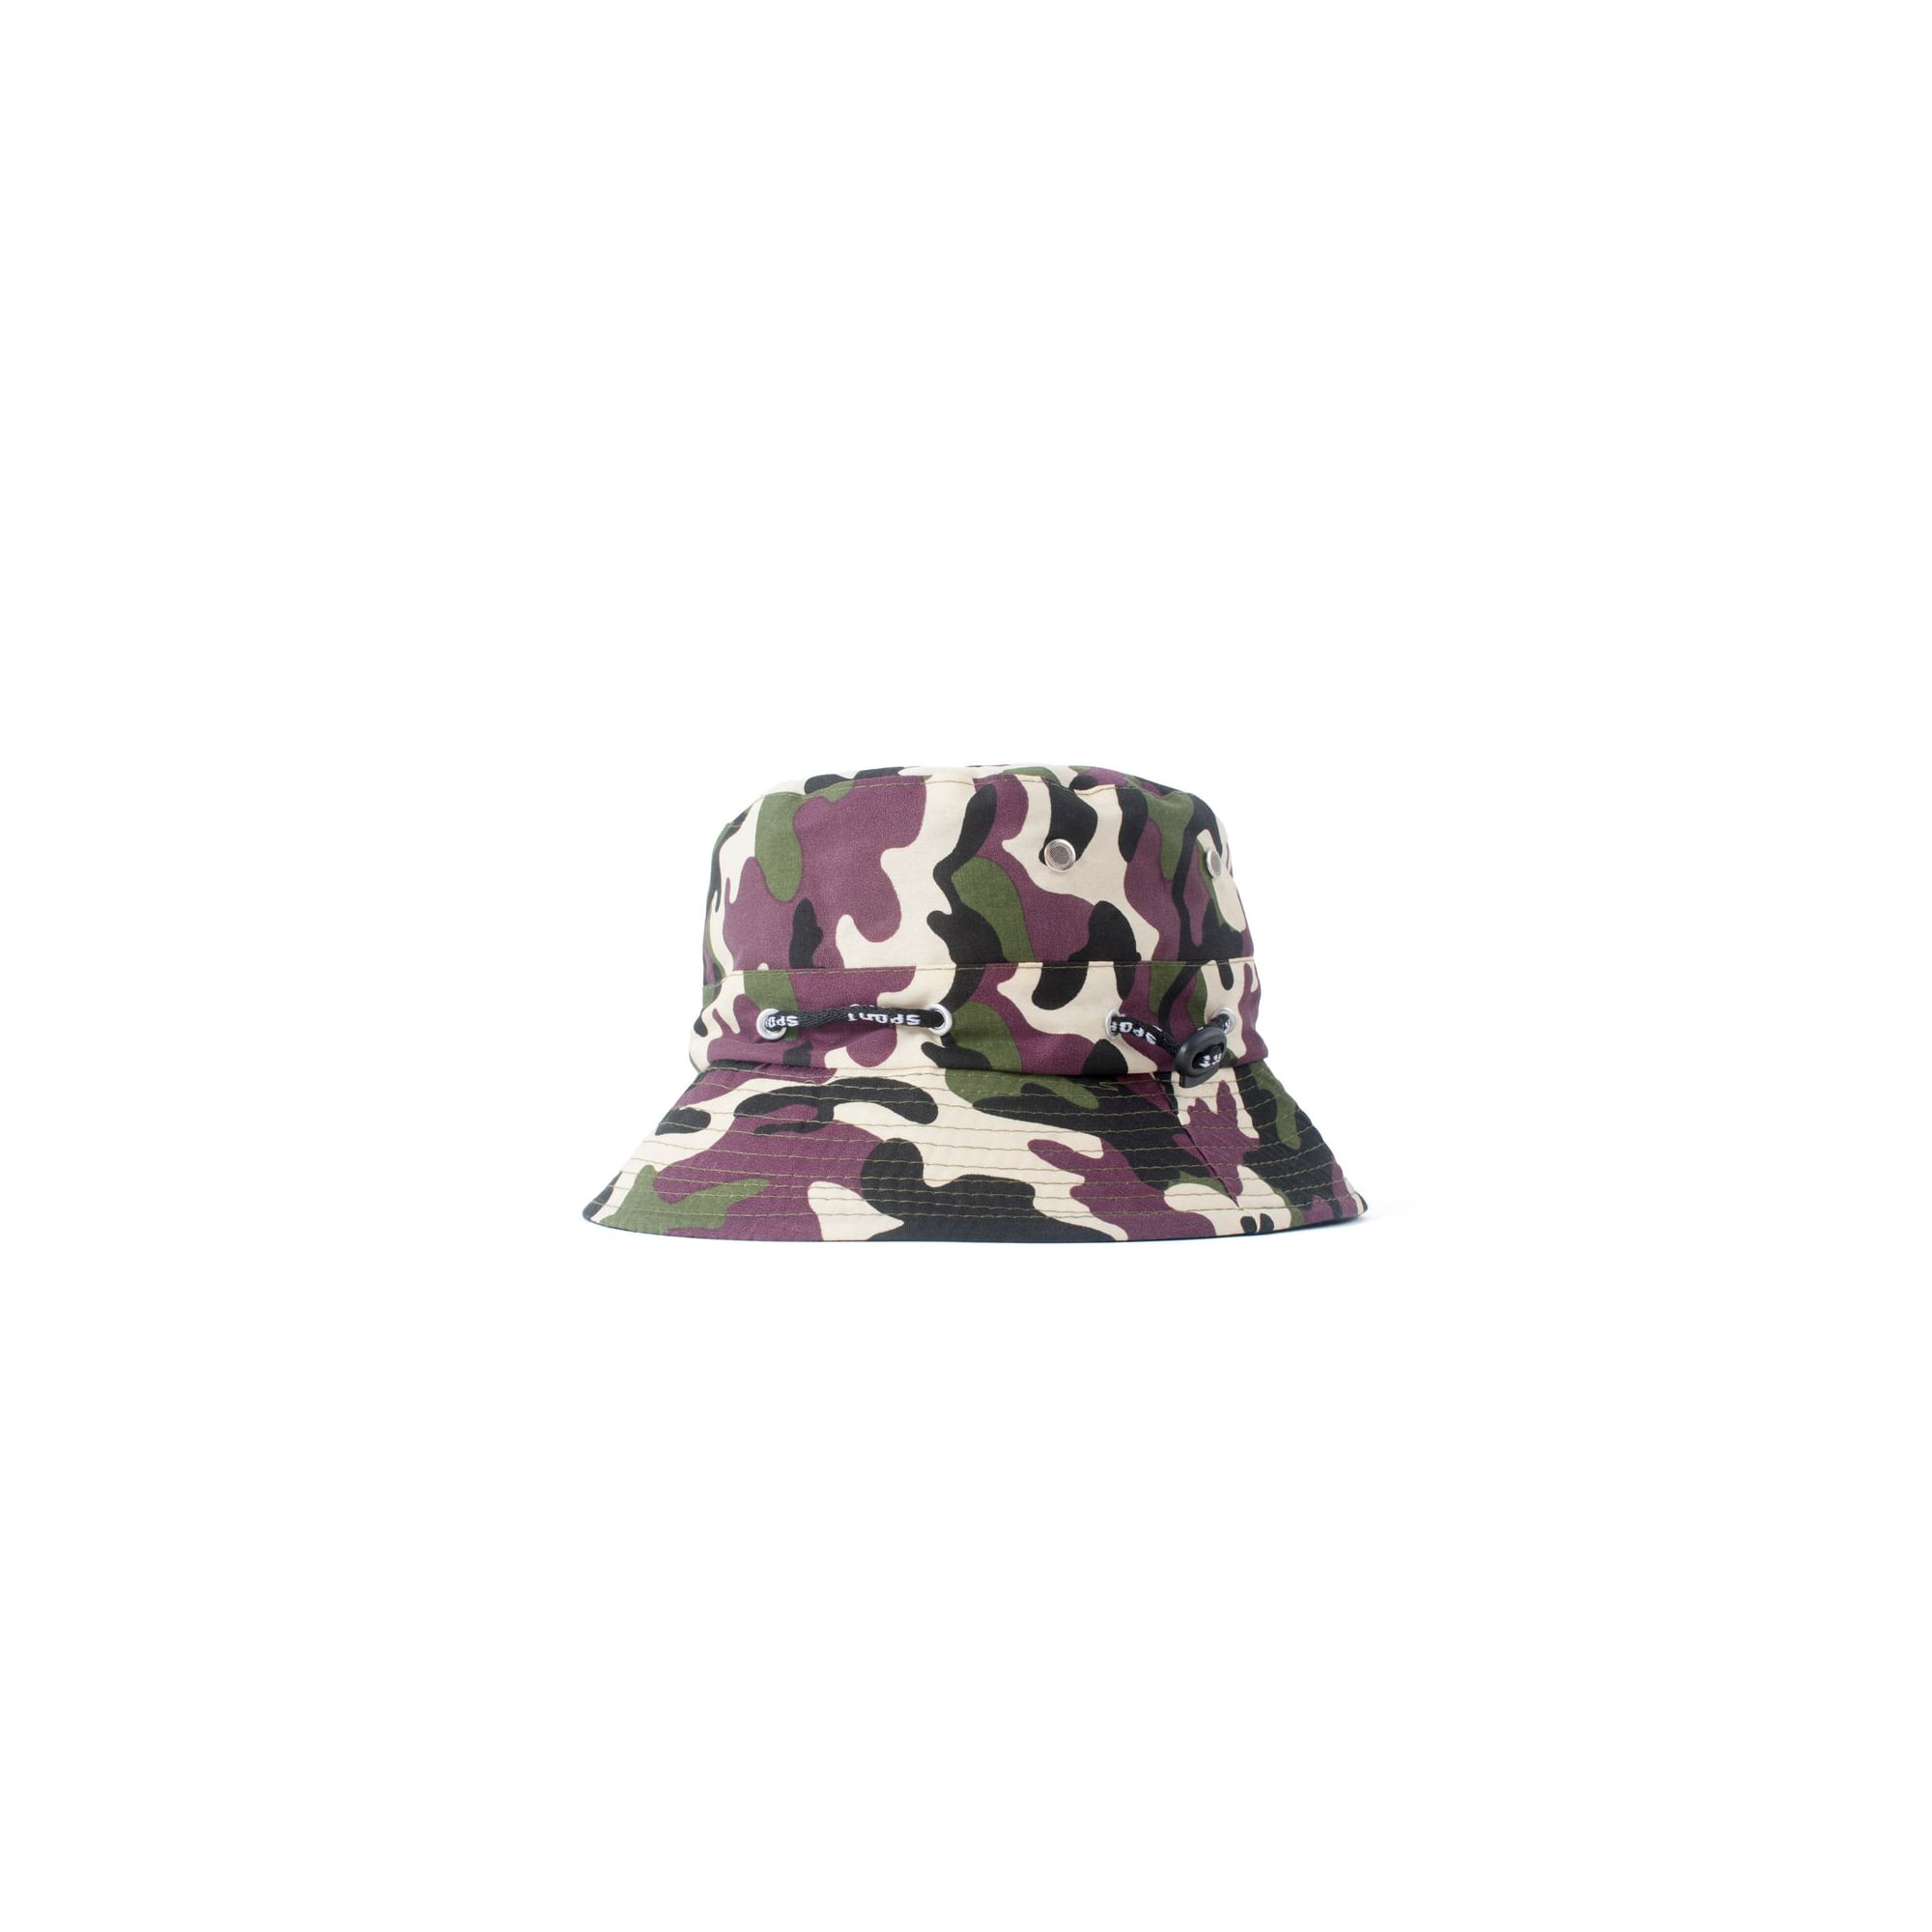 7aff1233444 Zodaca Men Women Camouflage Unisex Summer Bucket Hats Hunting Fishing  Fisherman Outdoor Cap Sun Hat - Black